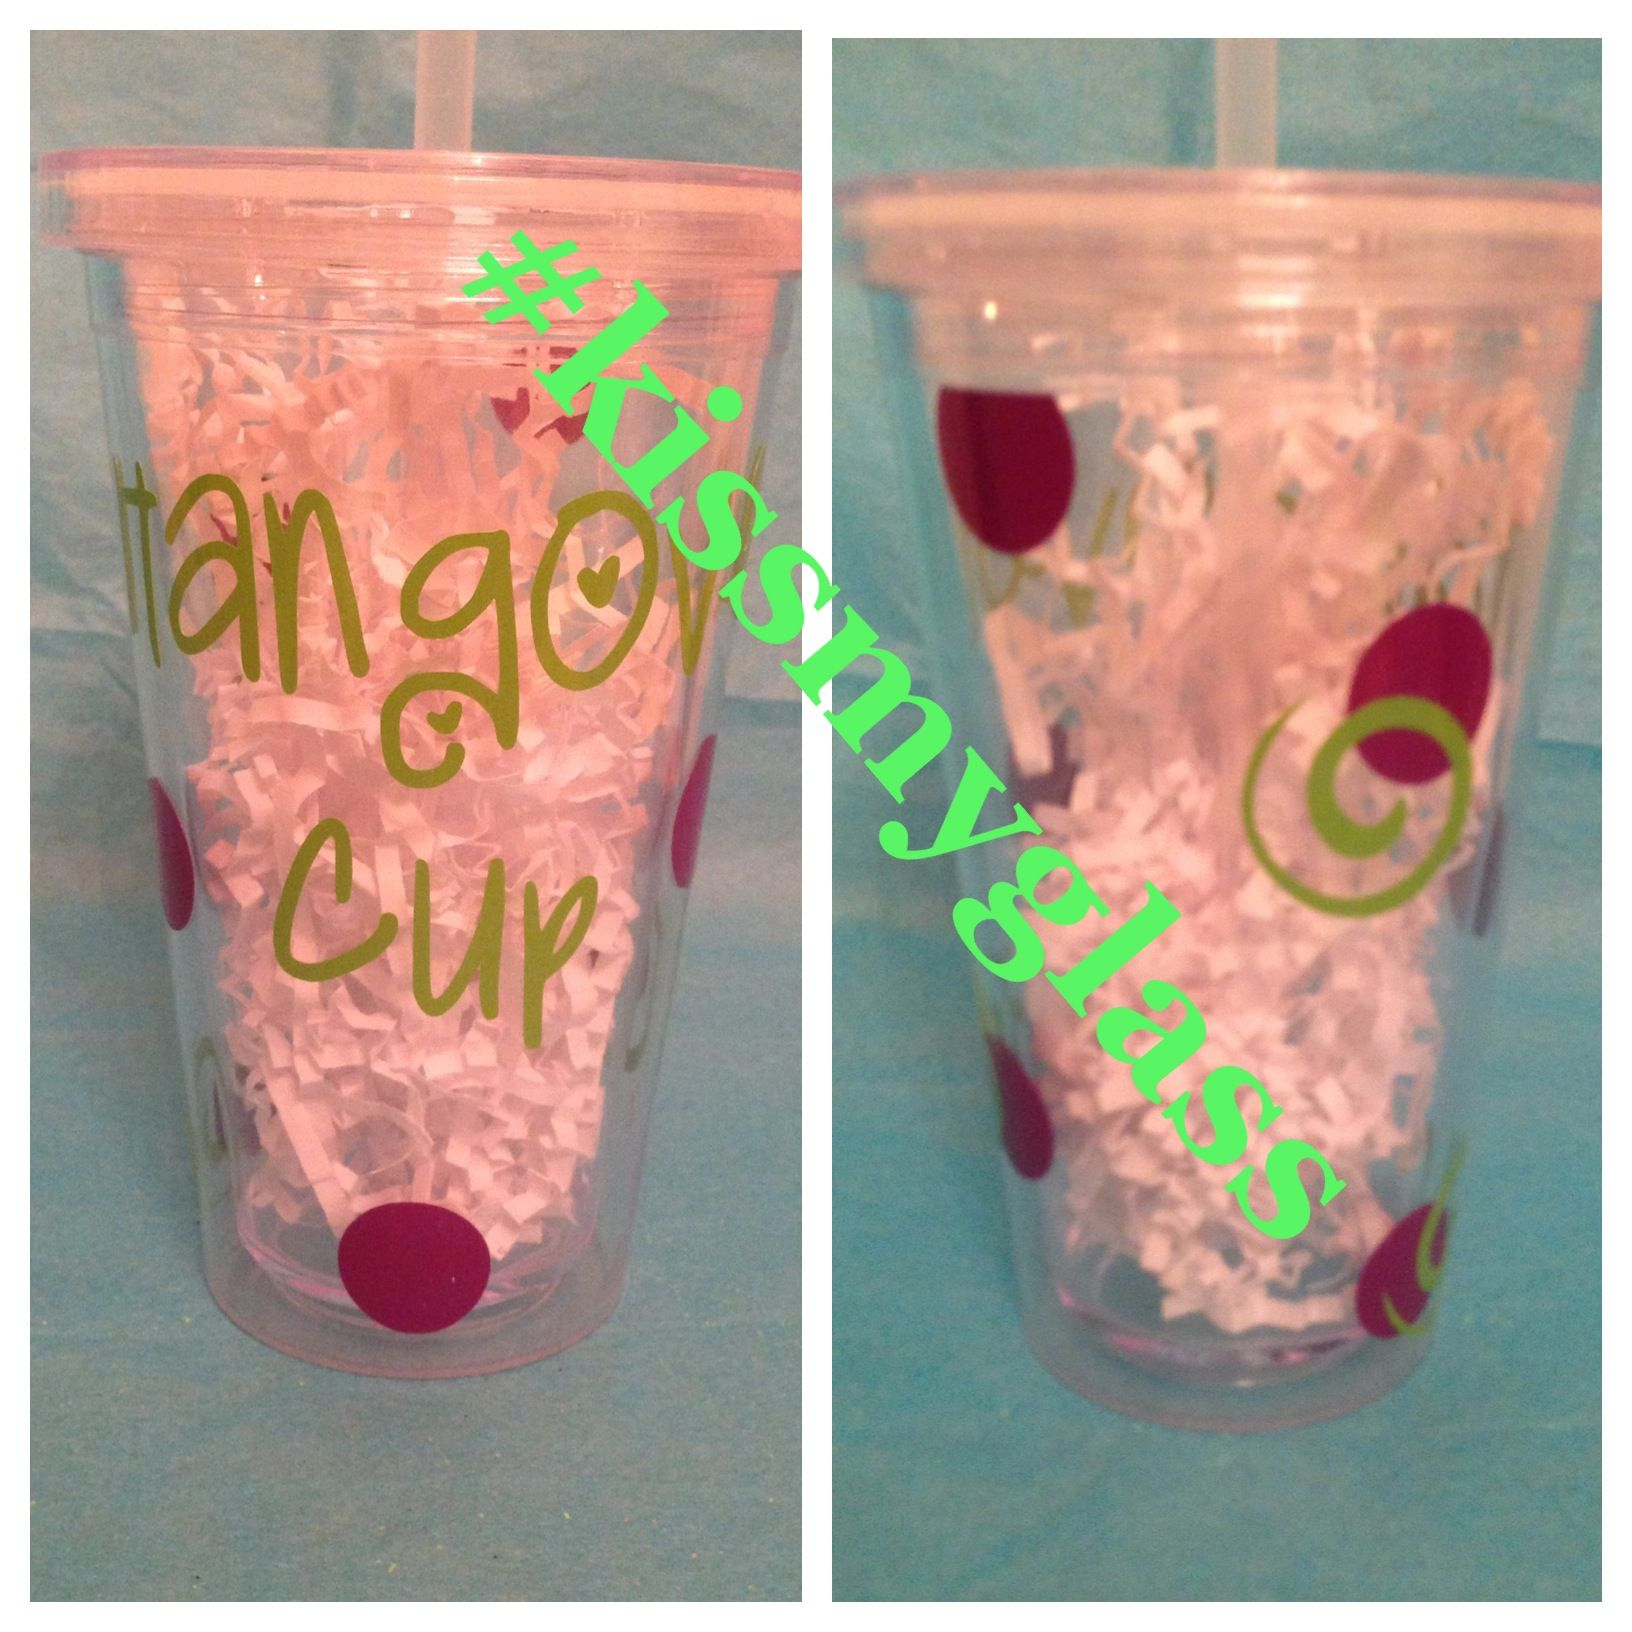 Hangover cup   Double walled tumbler can be customized to whatever you would like   Perfect for a party girl for her birthday!!  Facebook.com/orderkissmyglass